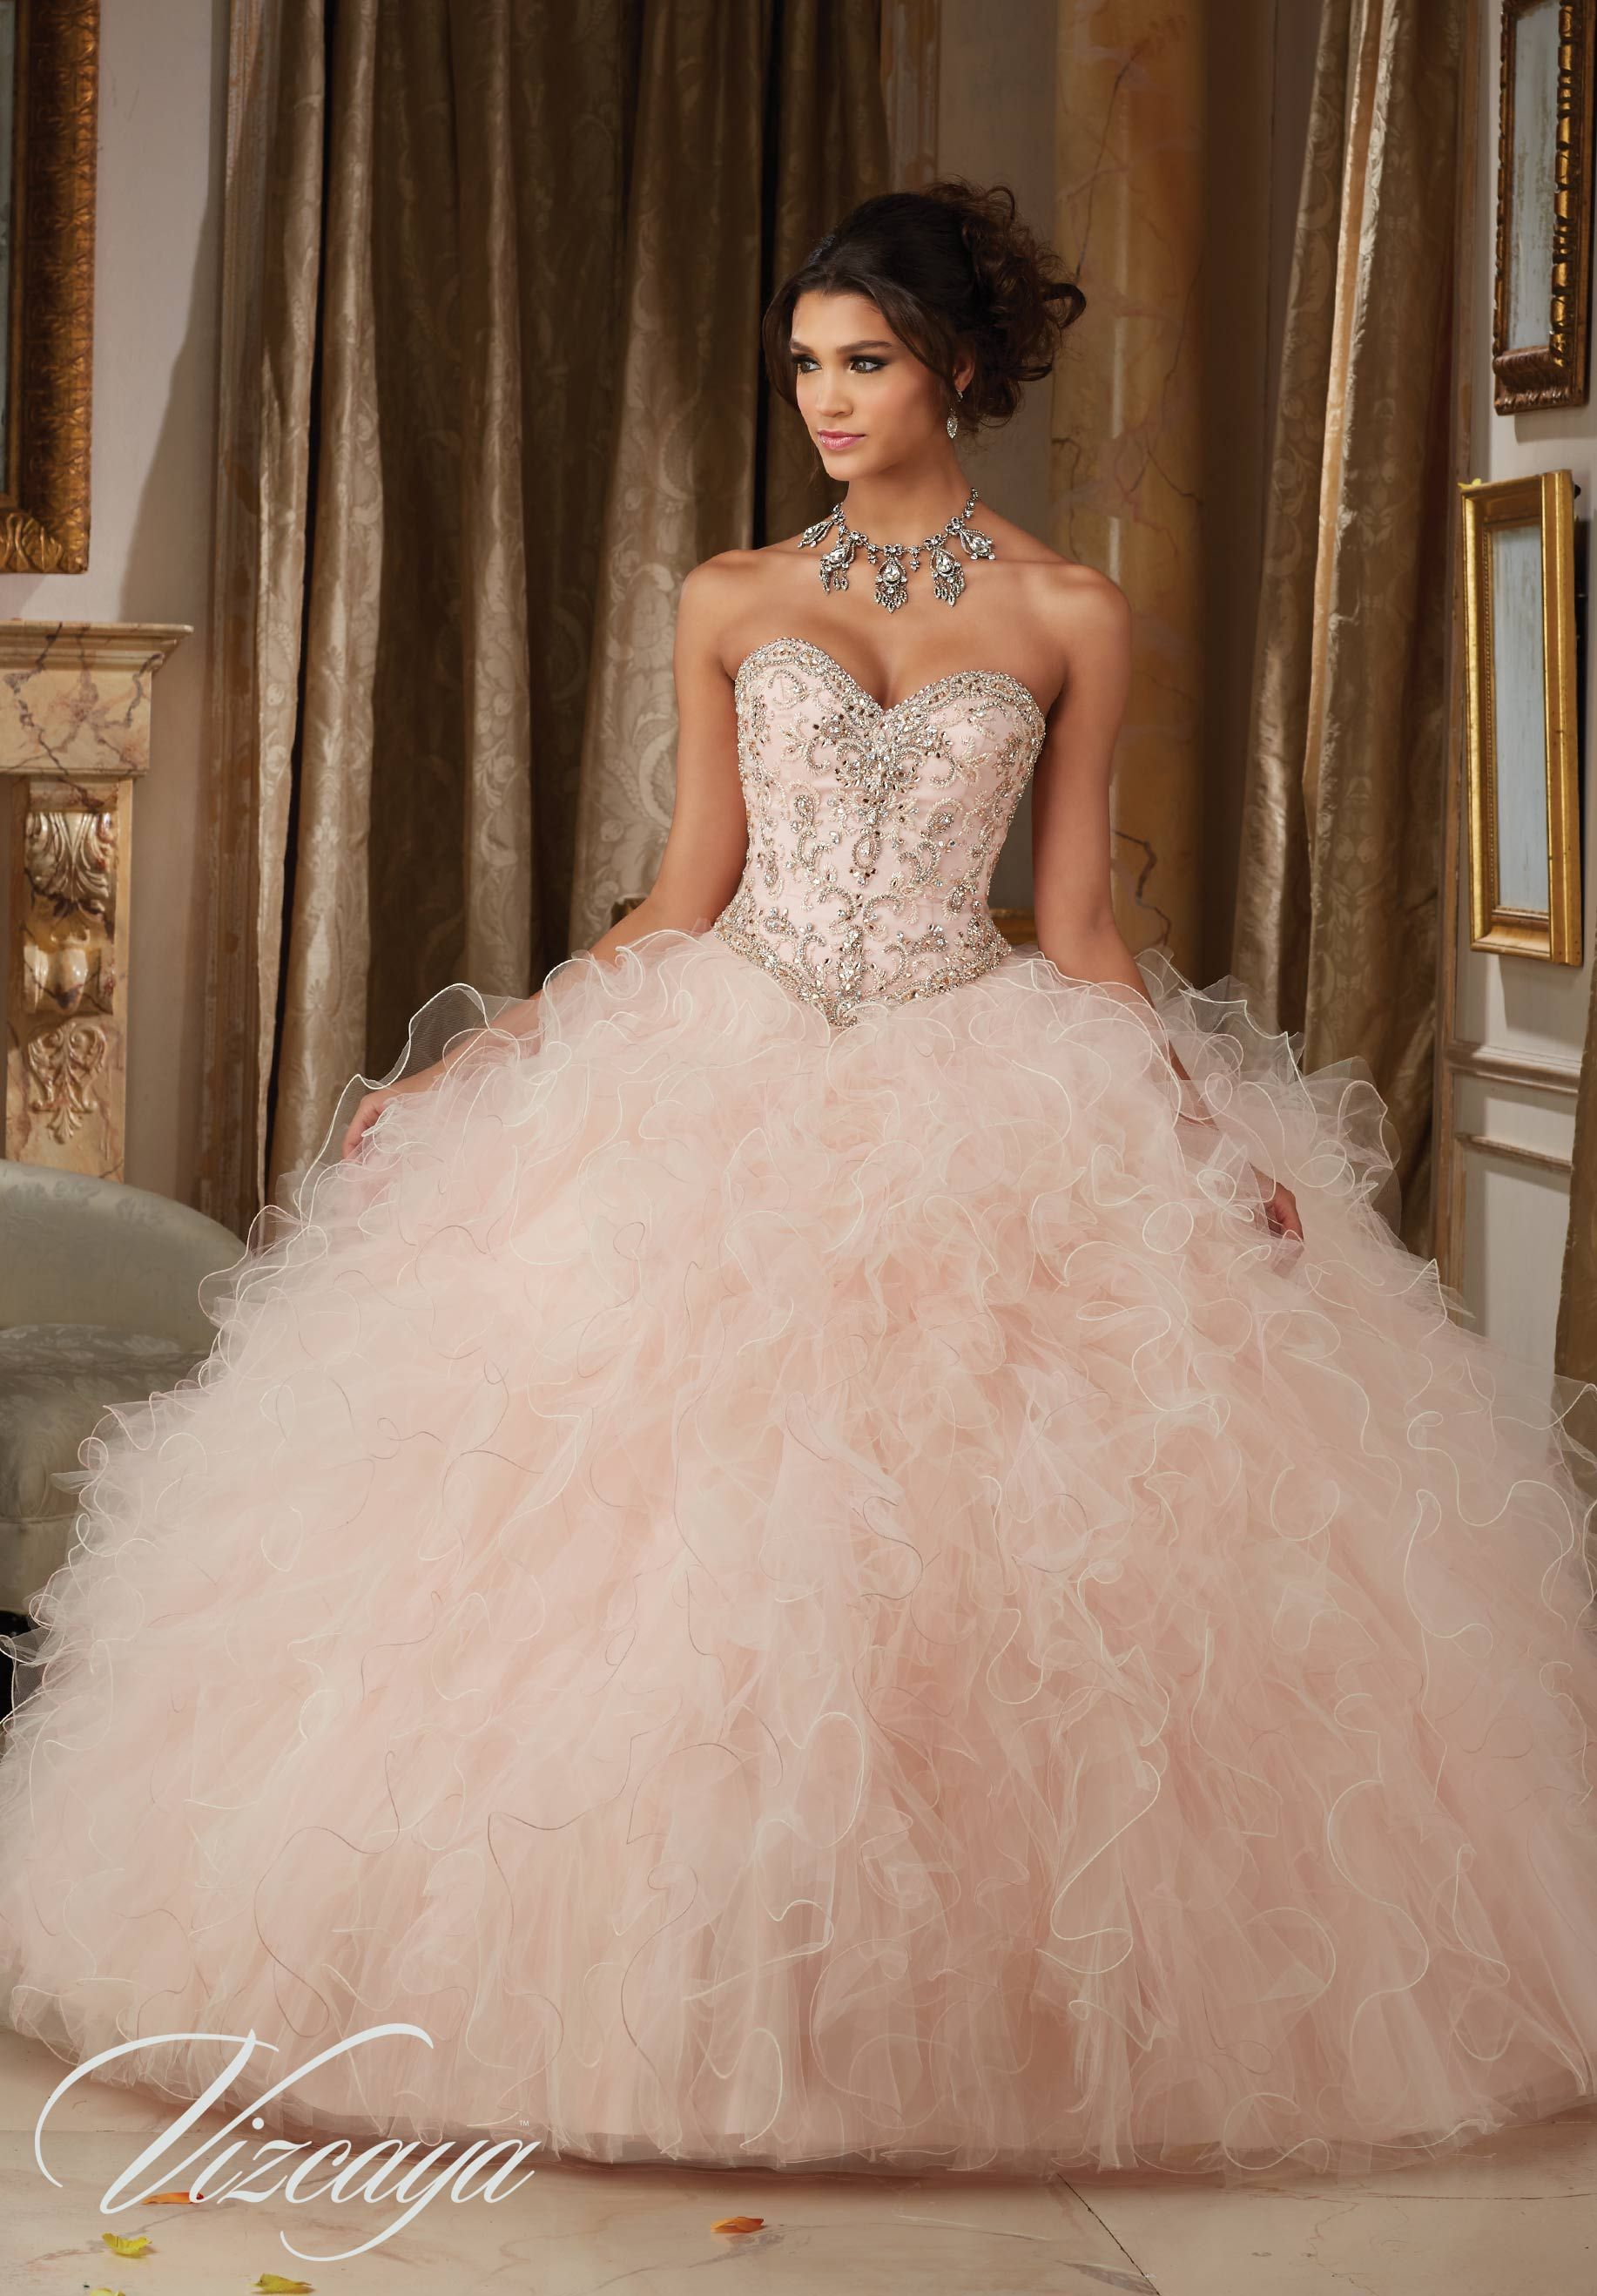 Dazzling beaded bodice on a ruffled tulle quinceañera dress my